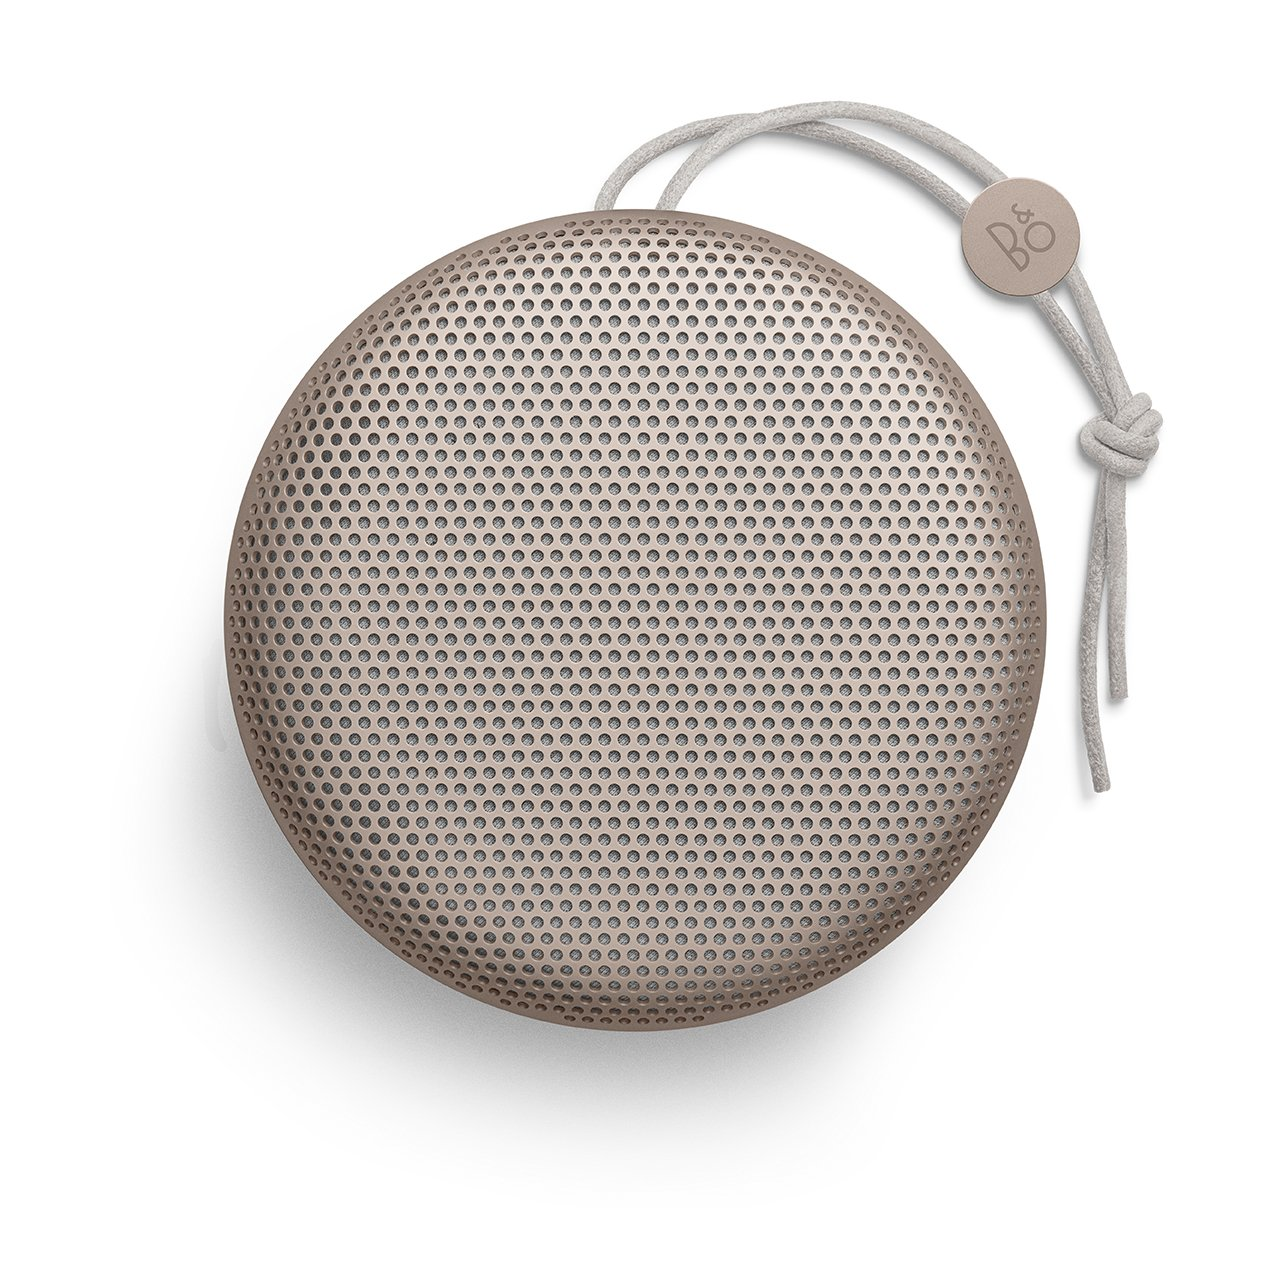 B&O PLAY by Bang & Olufsen Beoplay A1 Portable Bluetooth Speaker with Microphone (Sand Stone) by B&O PLAY by Bang & Olufsen